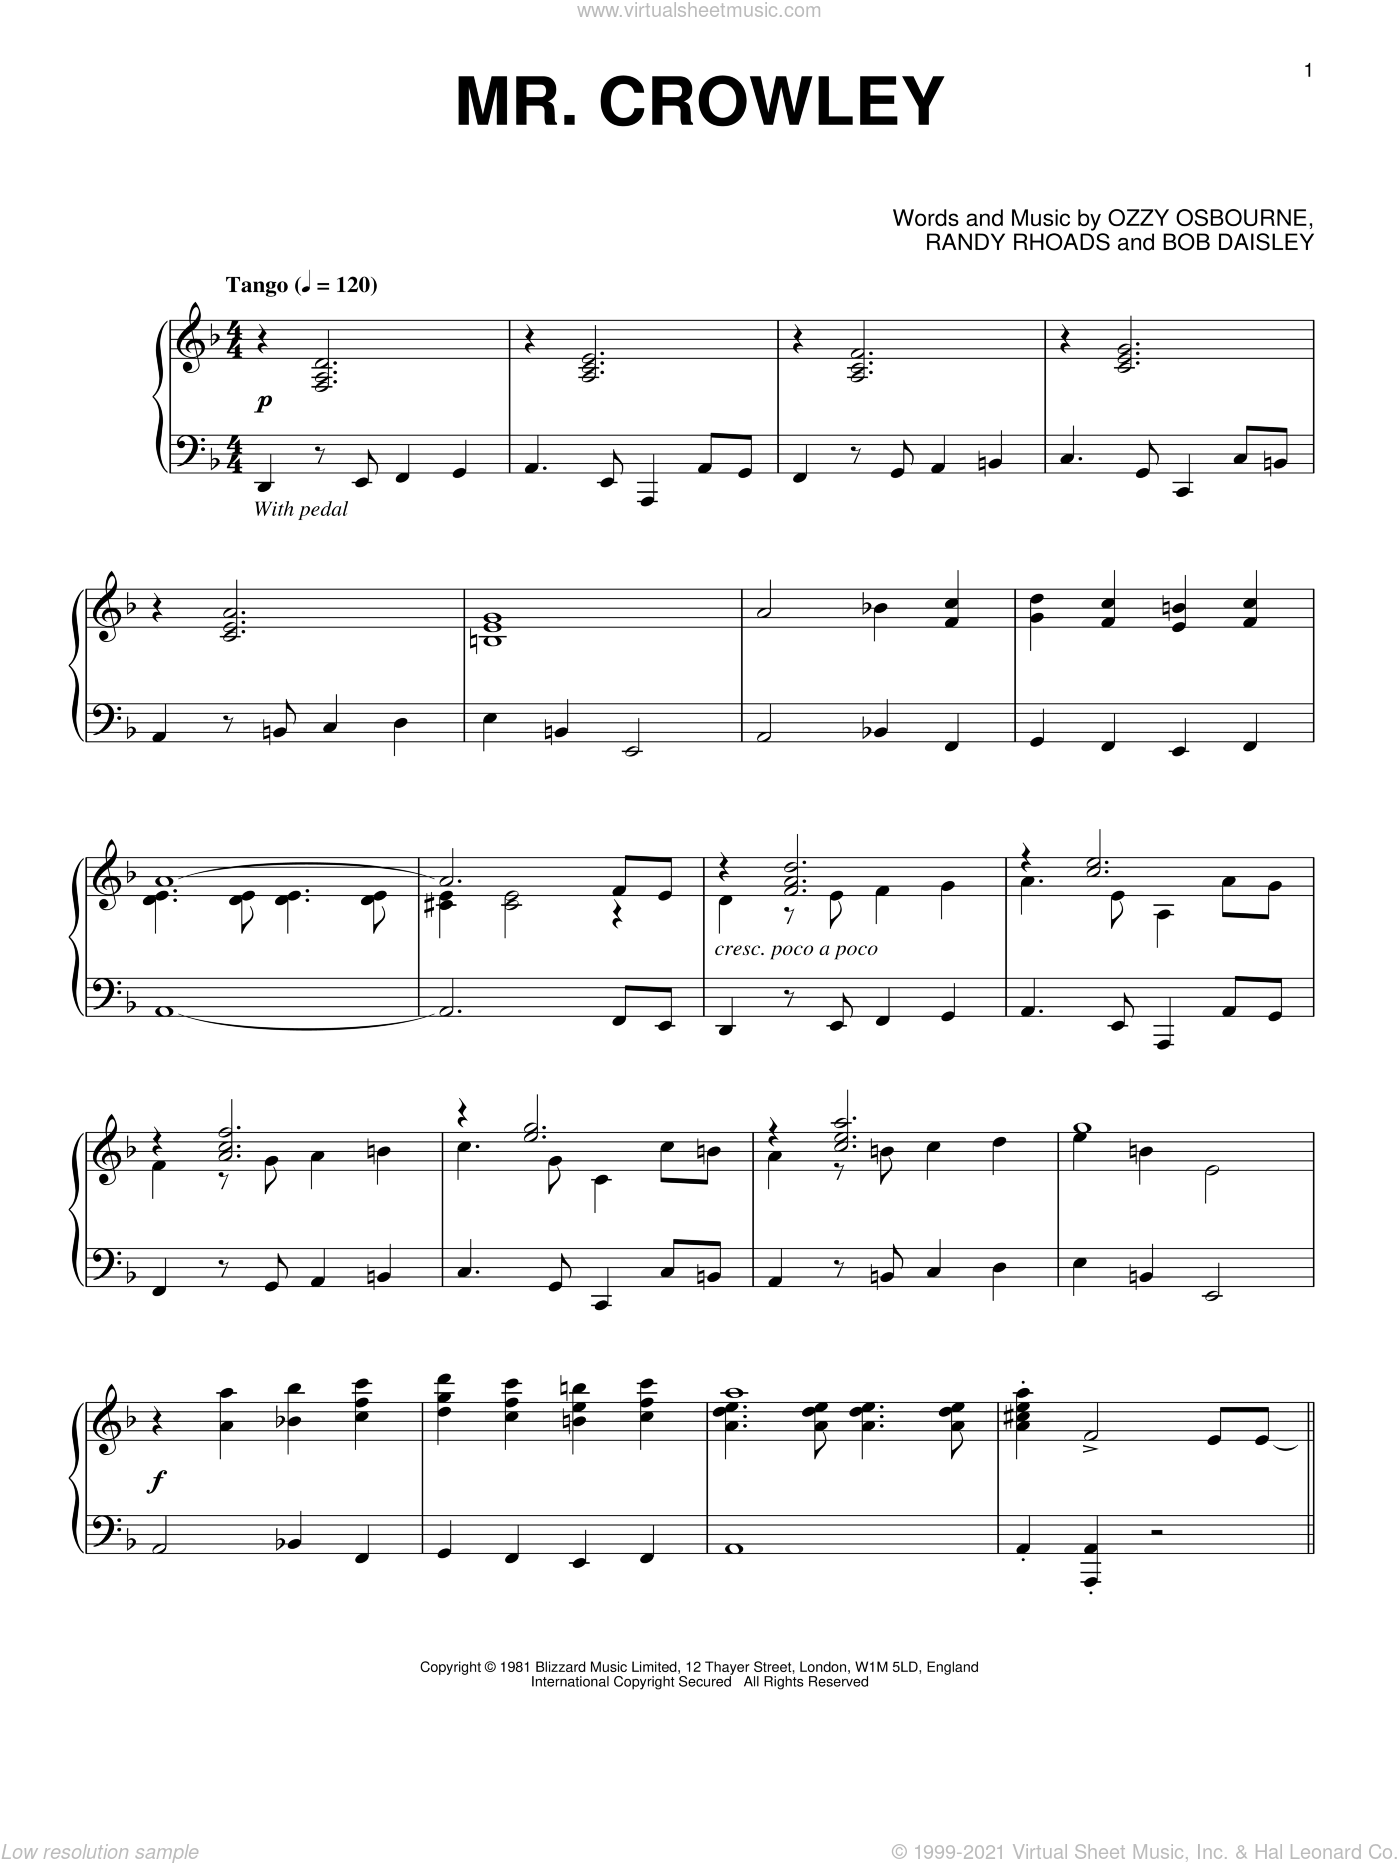 Mr. Crowley sheet music for piano solo by Ozzy Osbourne, Bob Daisley and Randy Rhoads, intermediate skill level